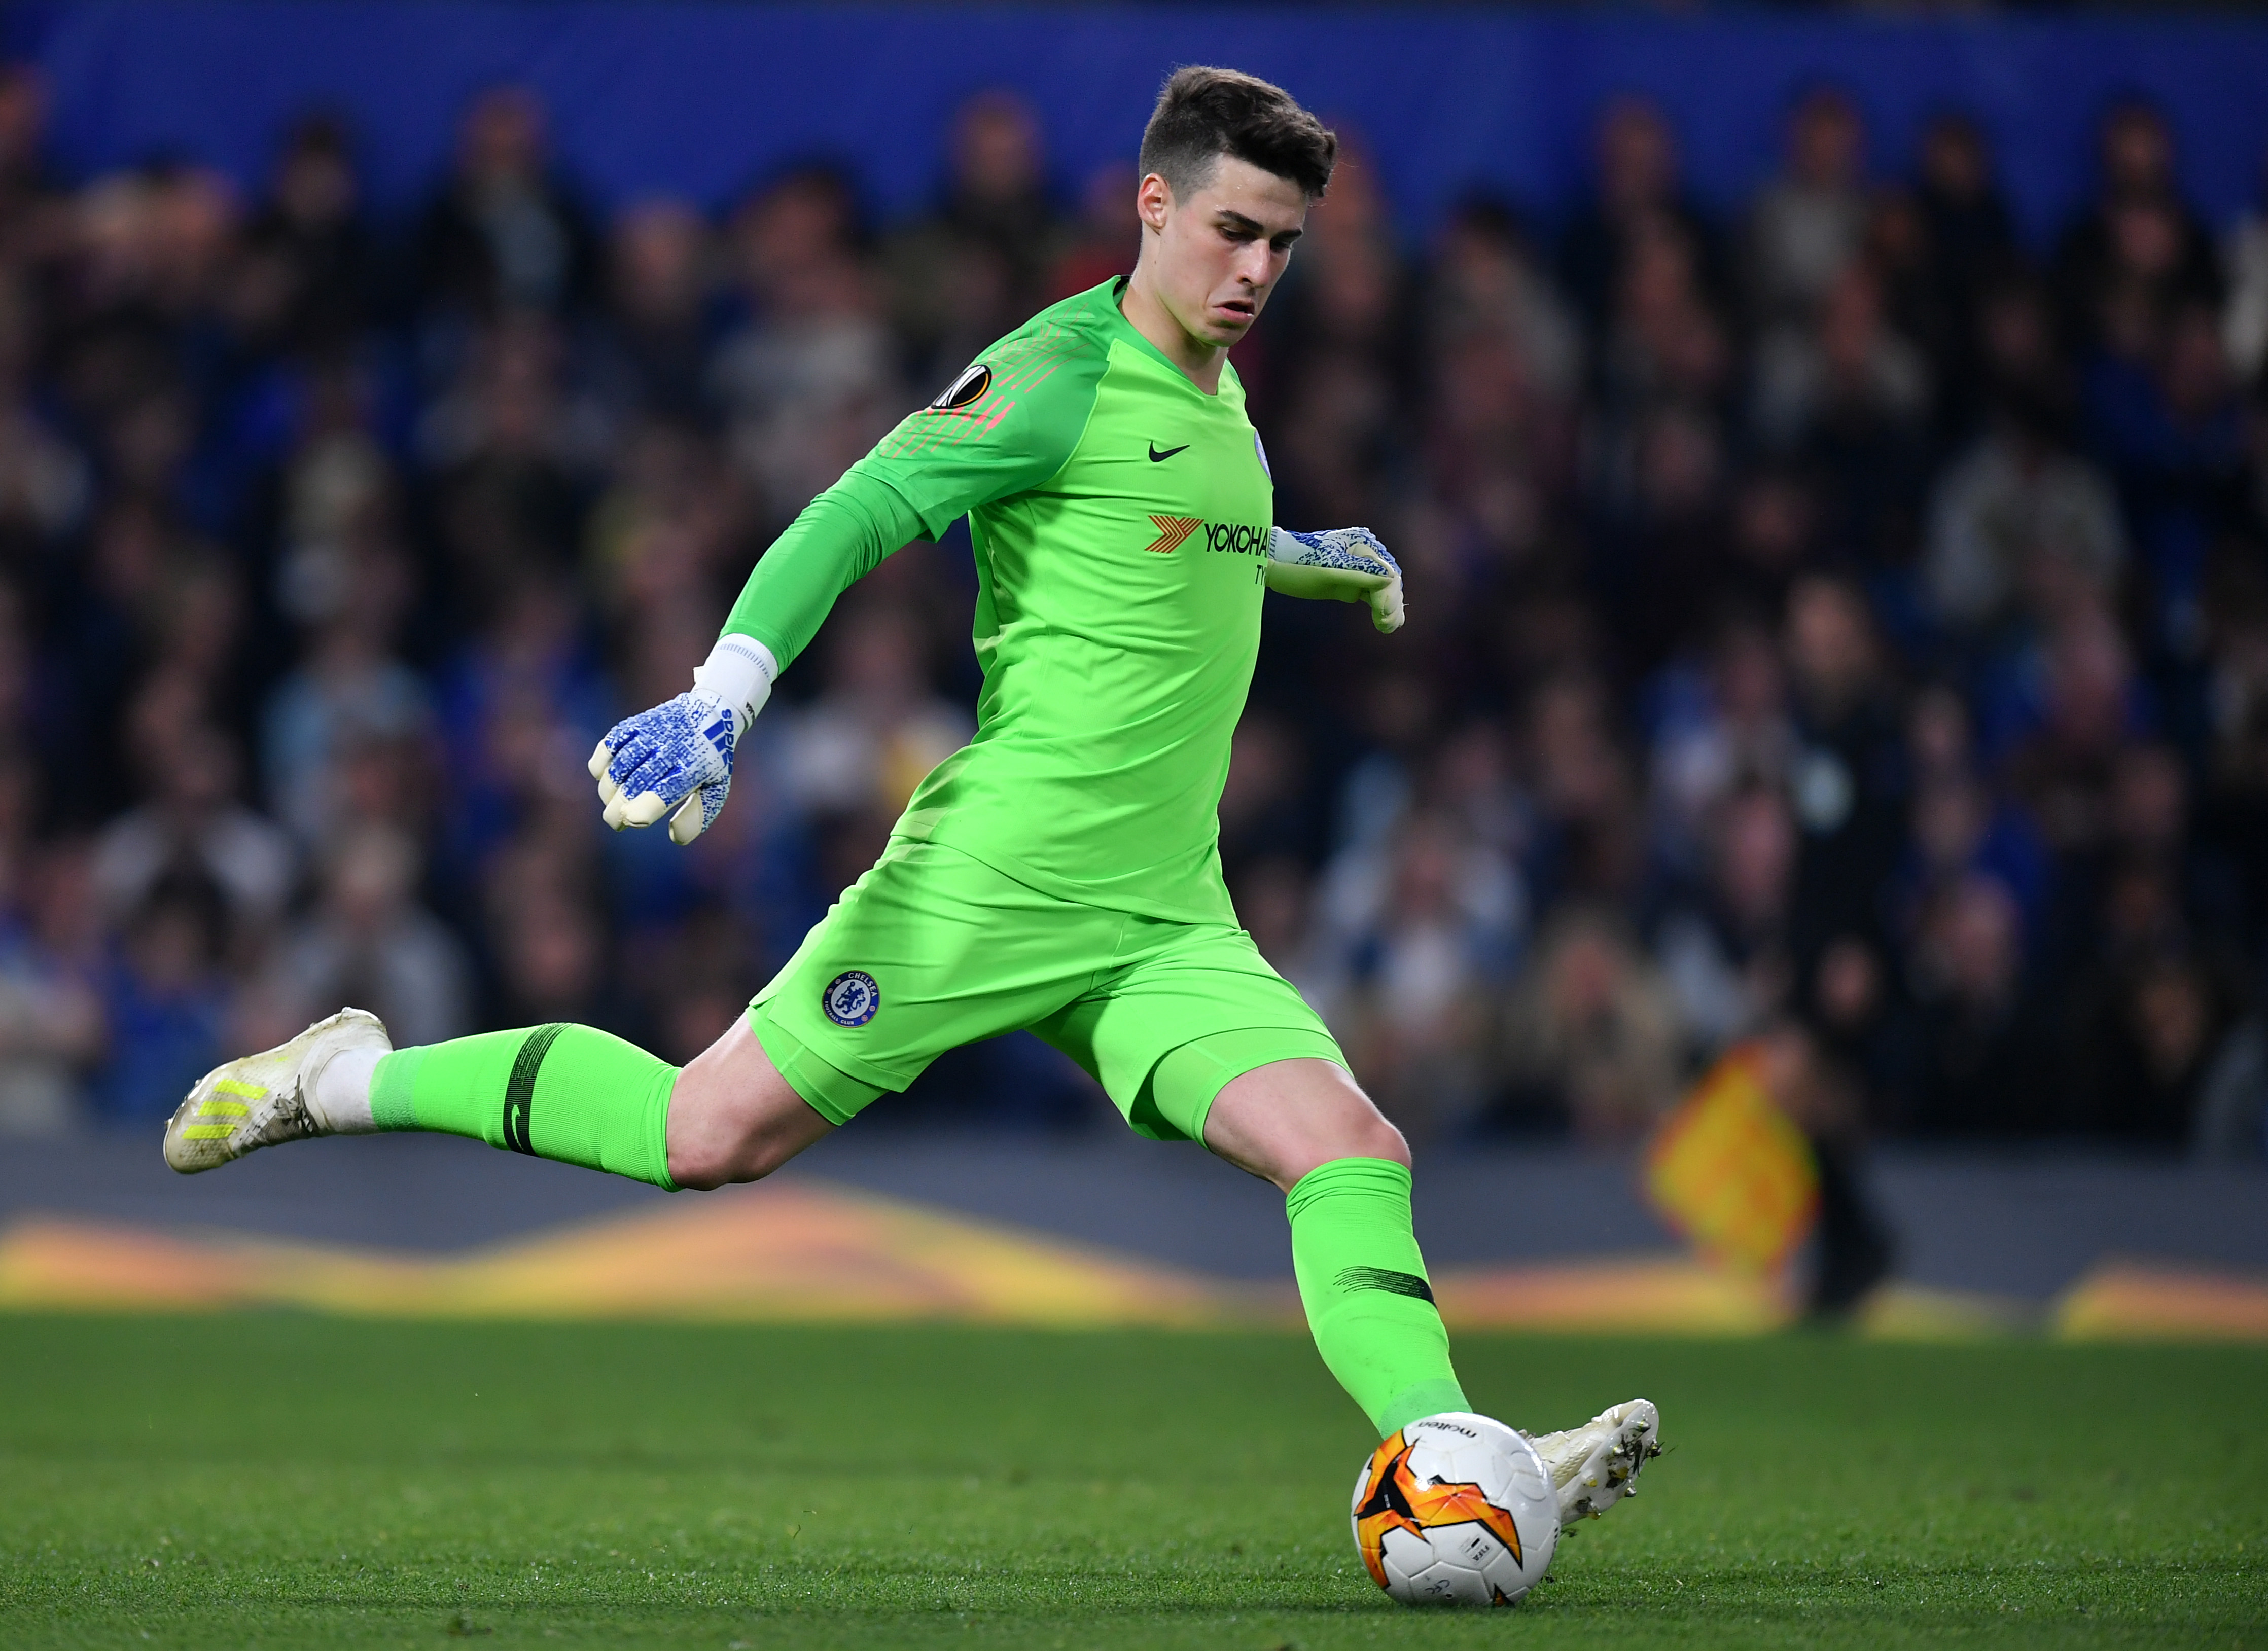 Kepa targets personal and team improvement with Chelsea going forward